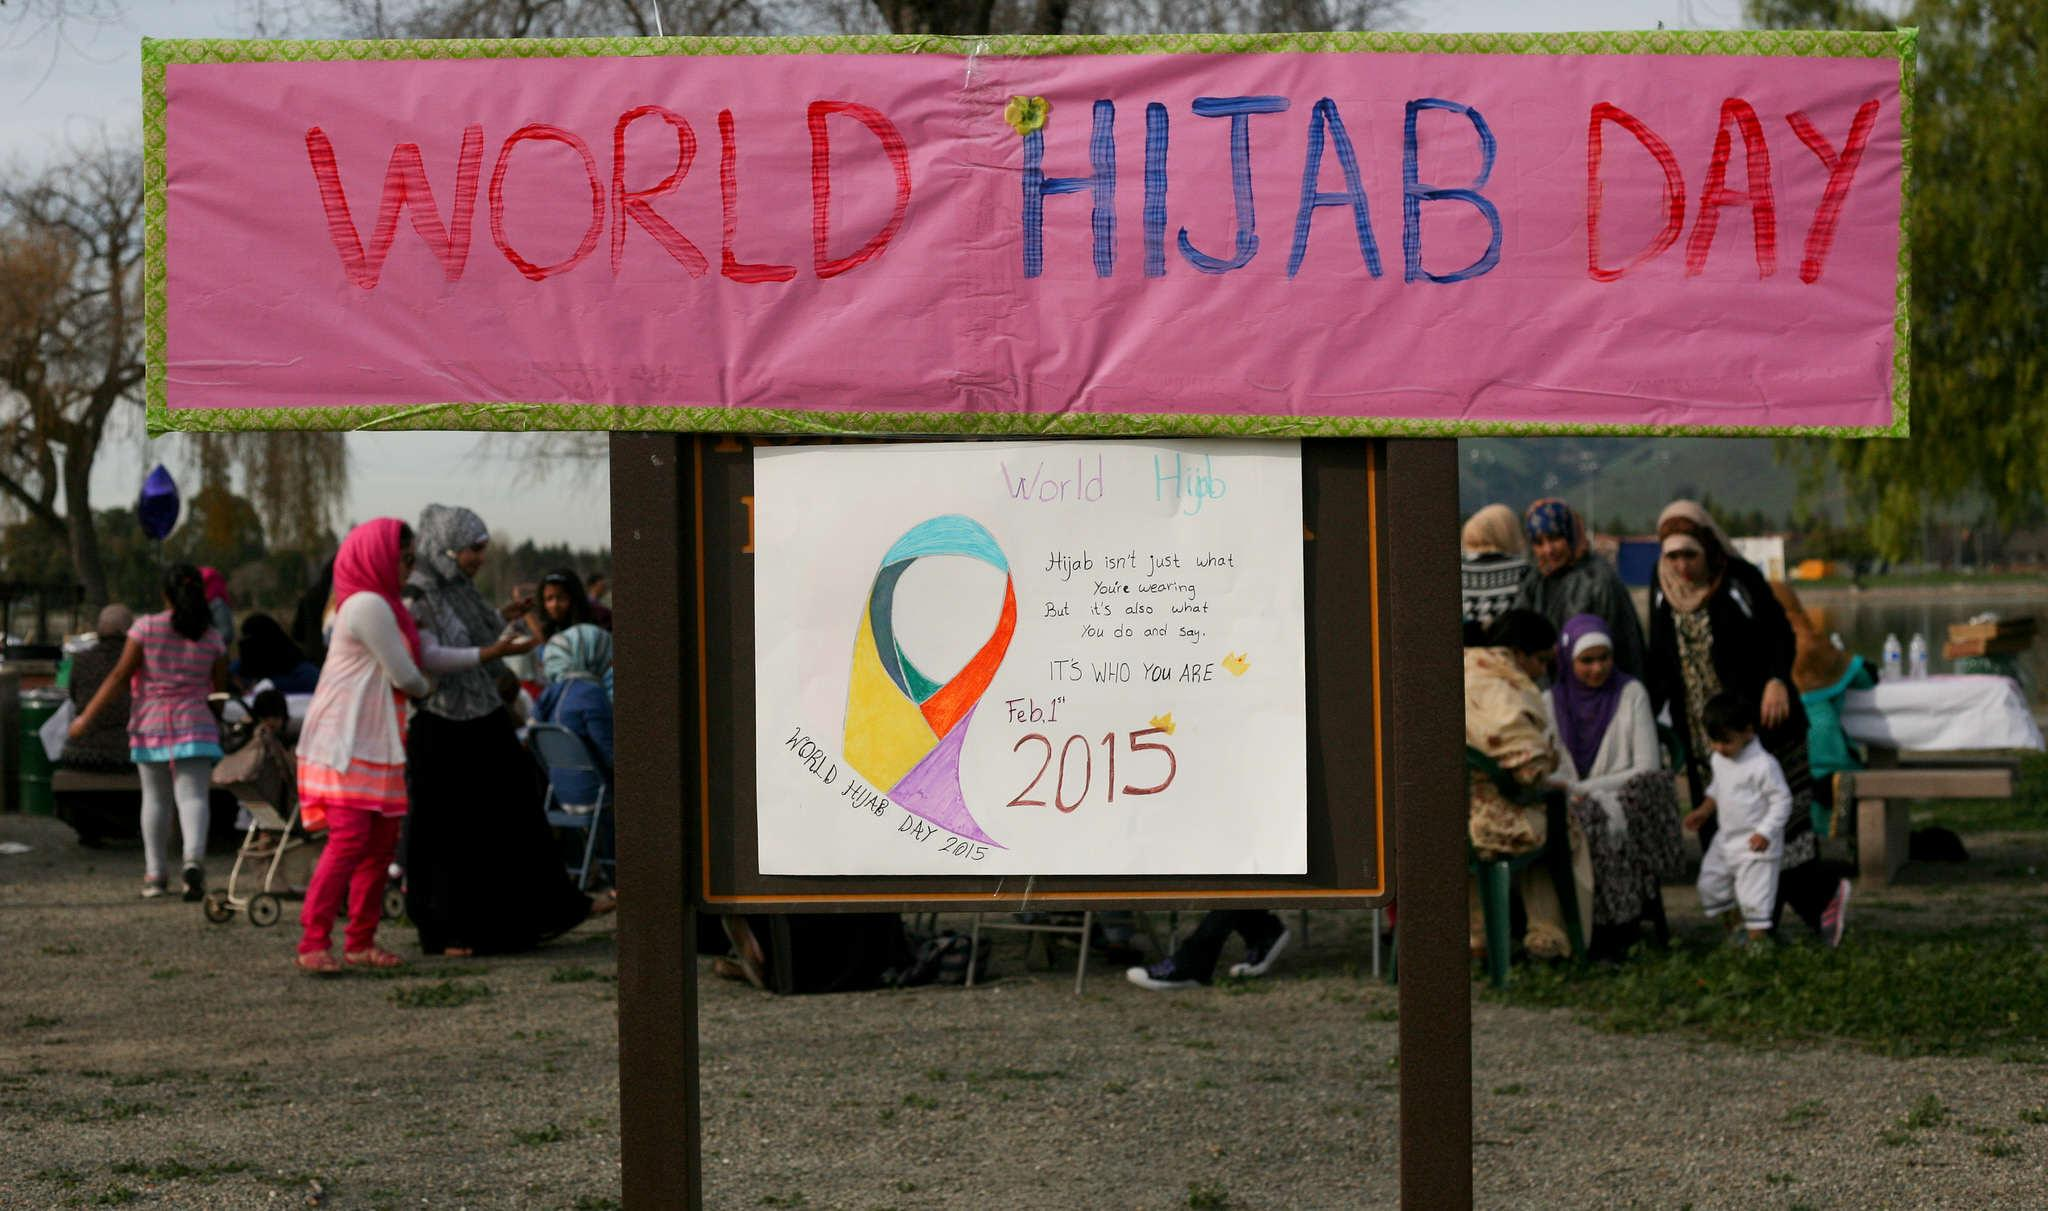 Families from all around the area join together to celebrate World Hijab Day at Lake Elizabeth in Fremont, Calif,. Sunday Feb. 1, 2015.